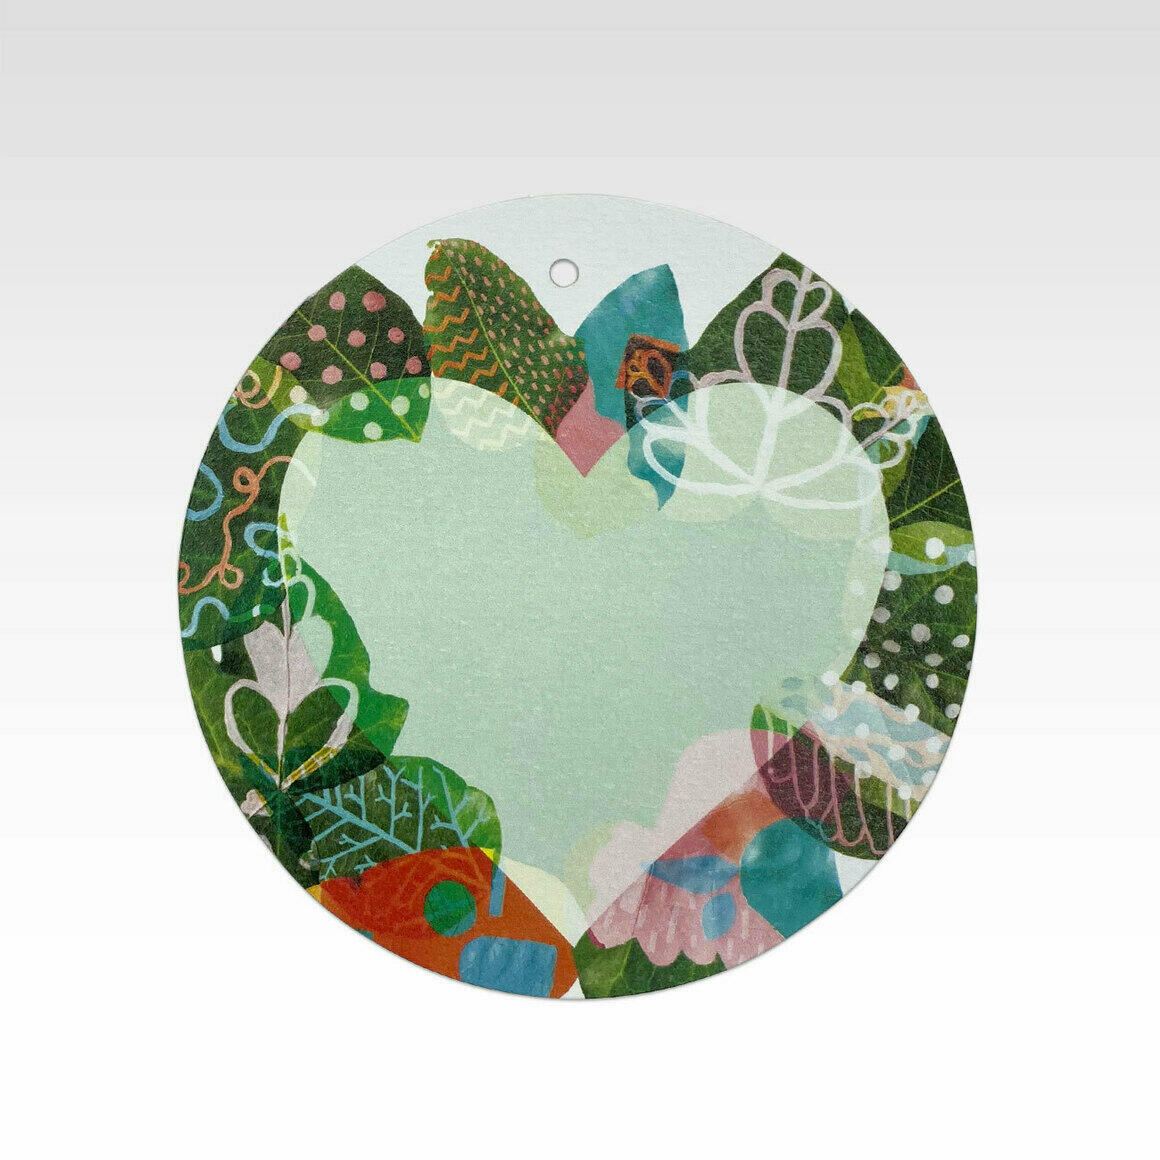 TAG075 – Painted Leaves Heart   Trada Marketplace